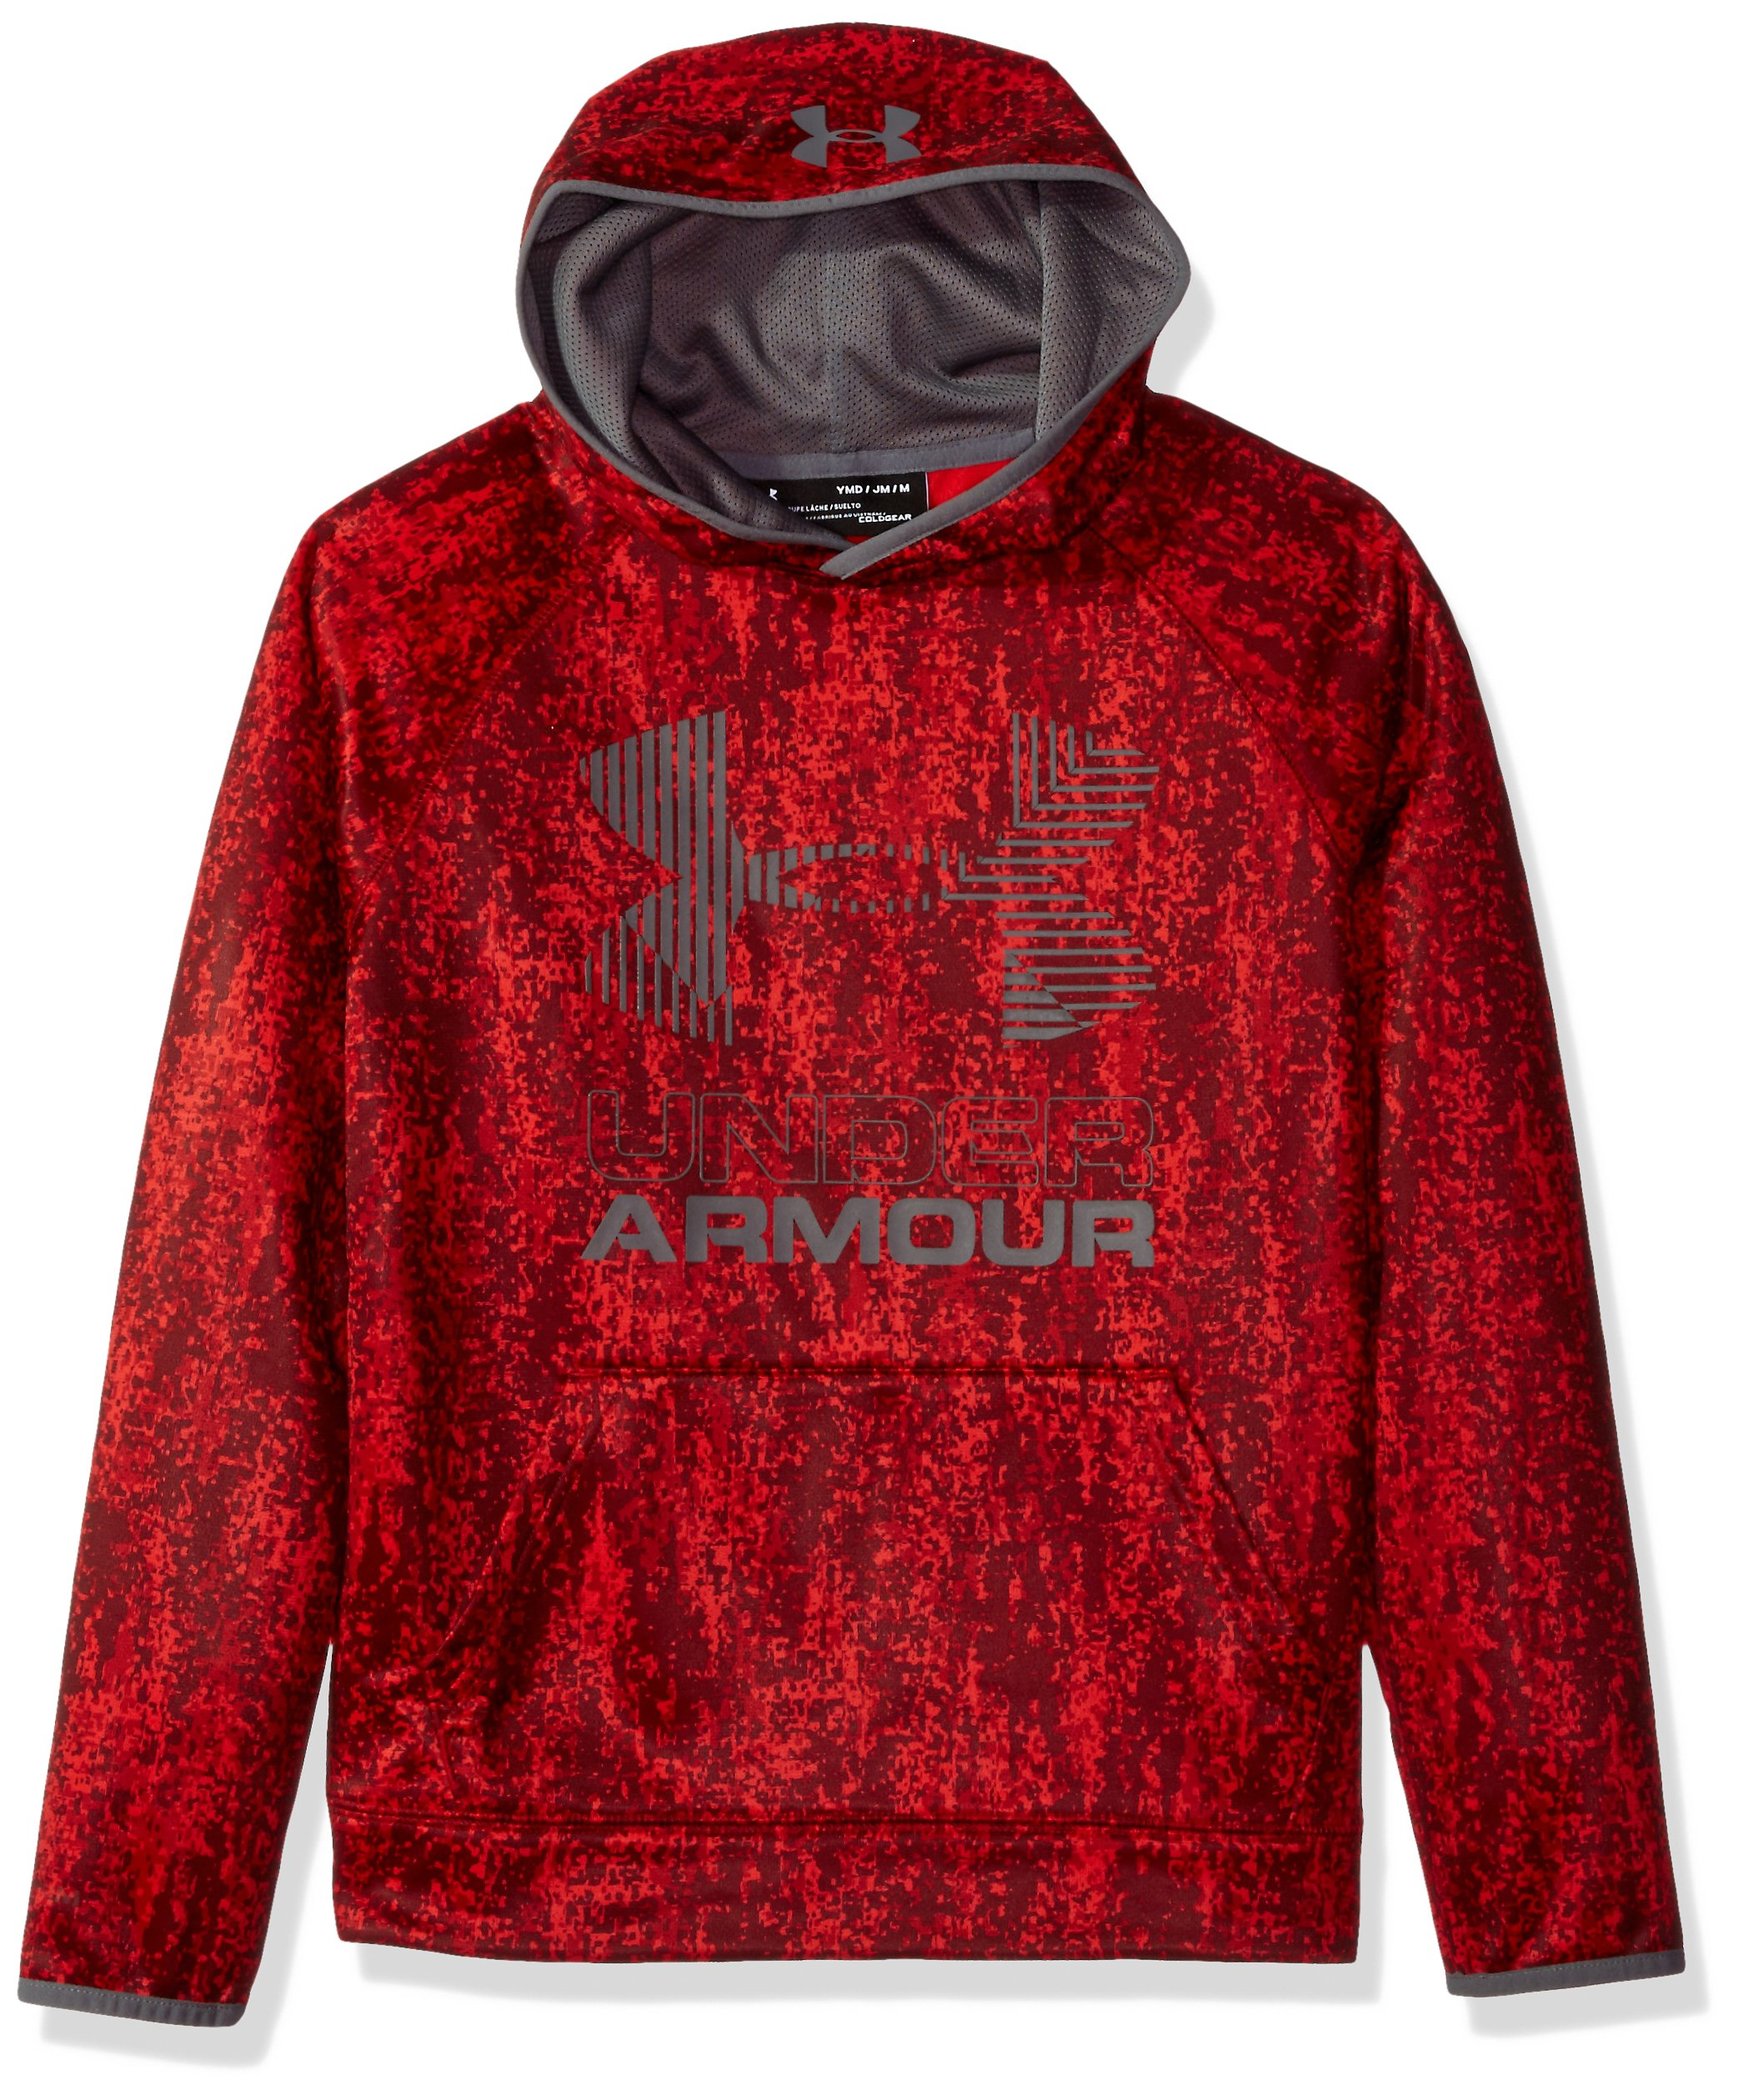 Under Armour Boys' Armour Fleece Printed Big Logo Hoodie, Red /Graphite, Youth Small